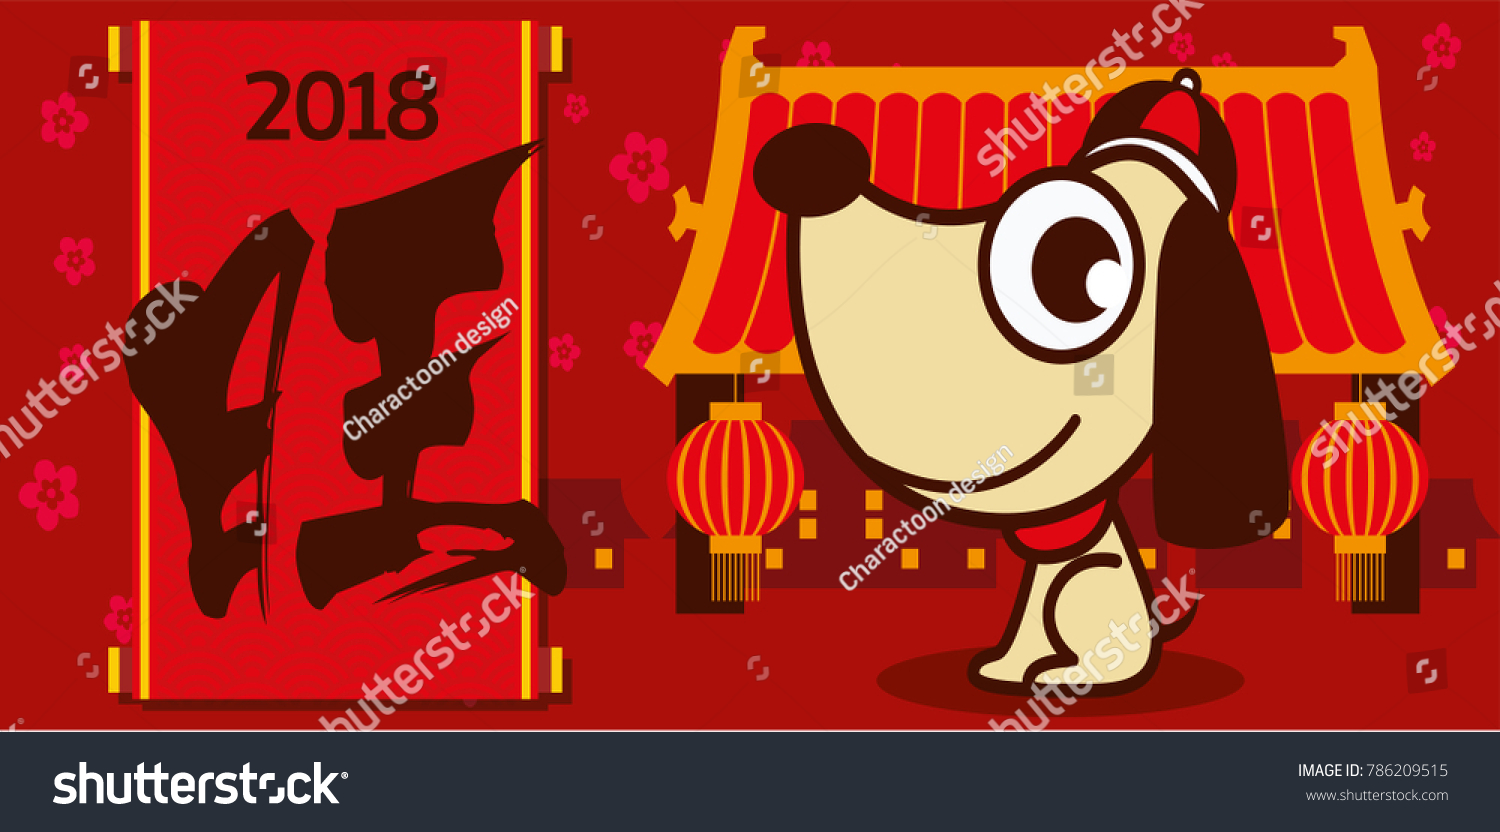 Chinese new year 2018 cute dog stock vector 786209515 shutterstock chinese new year 2018 cute dog on chinatown background chinese new year greeting card kristyandbryce Images